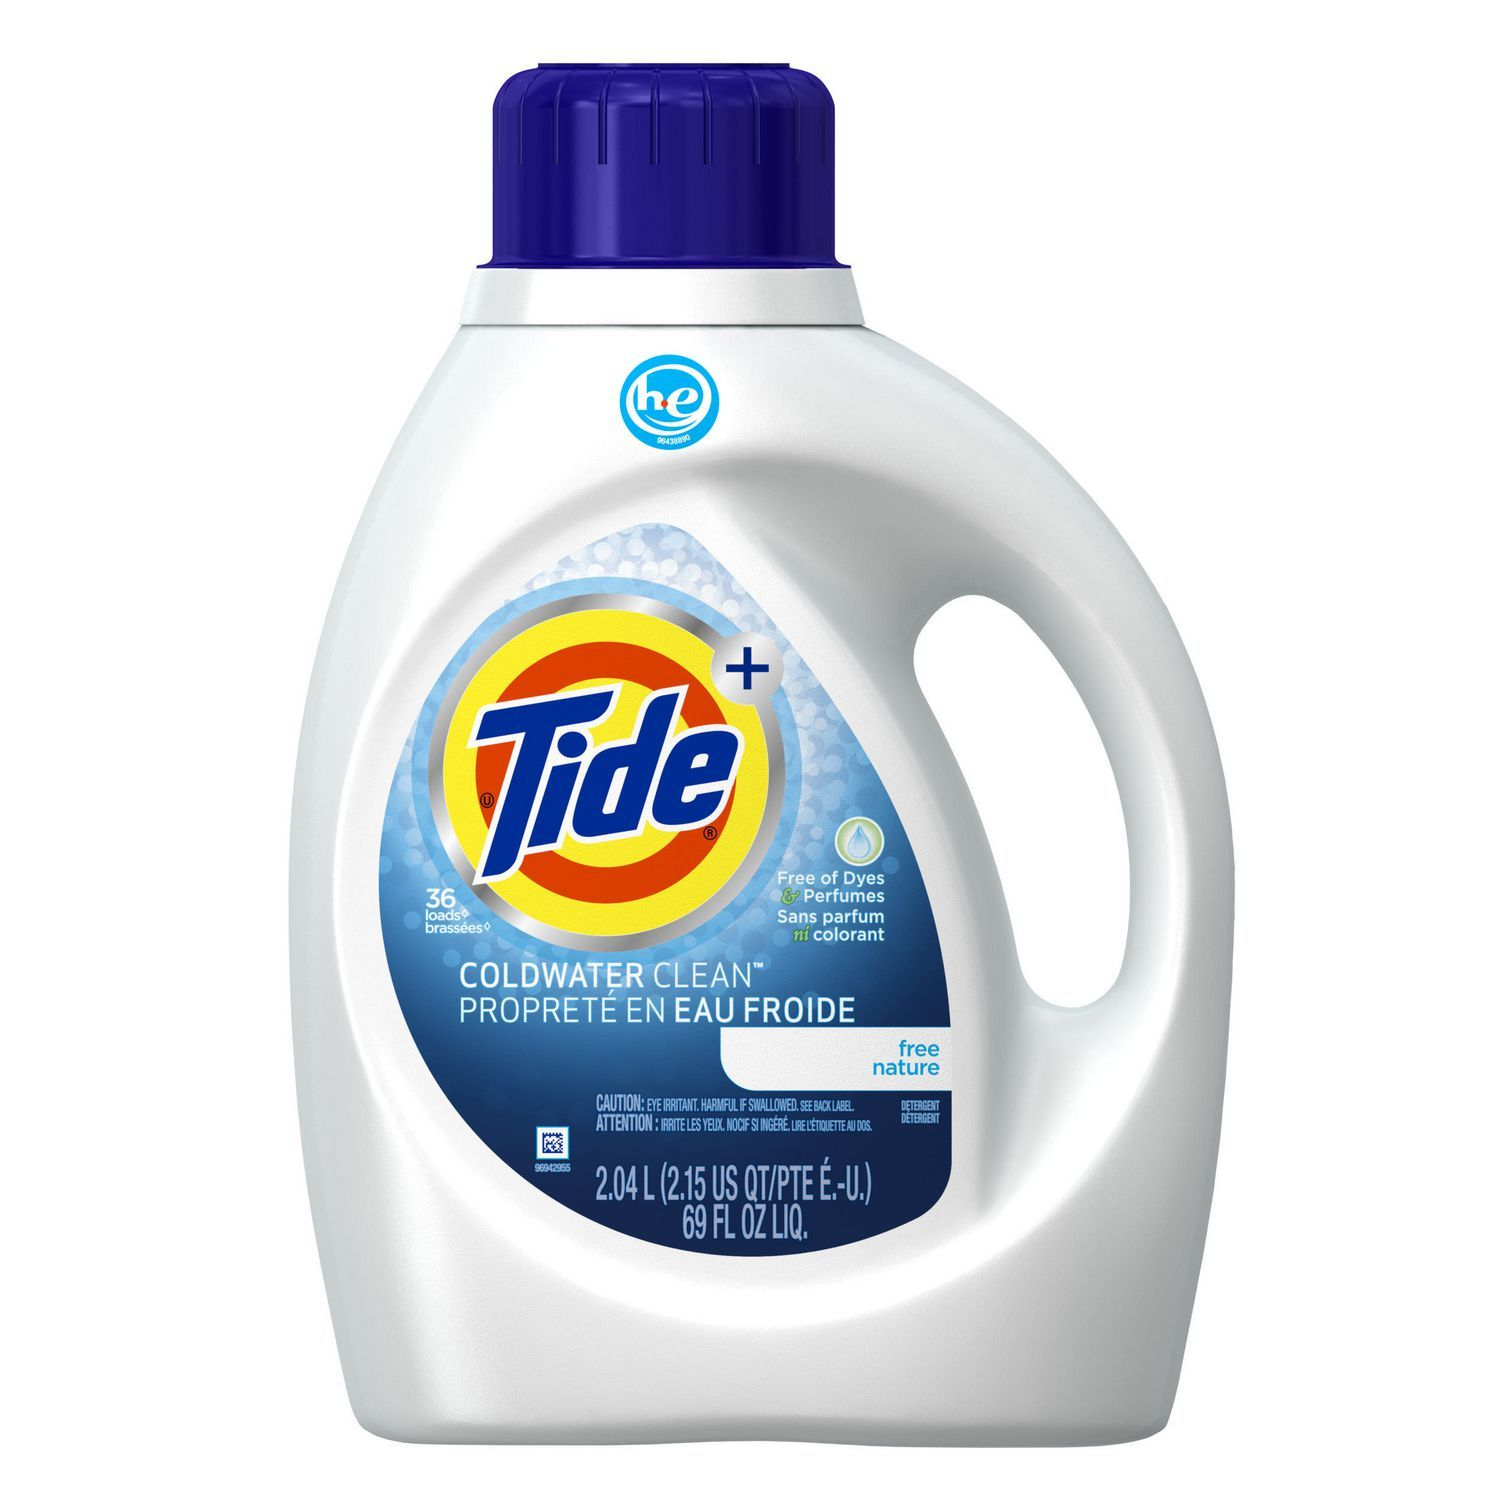 Tide Coldwater Clean Laundry Detergent Con Imagenes